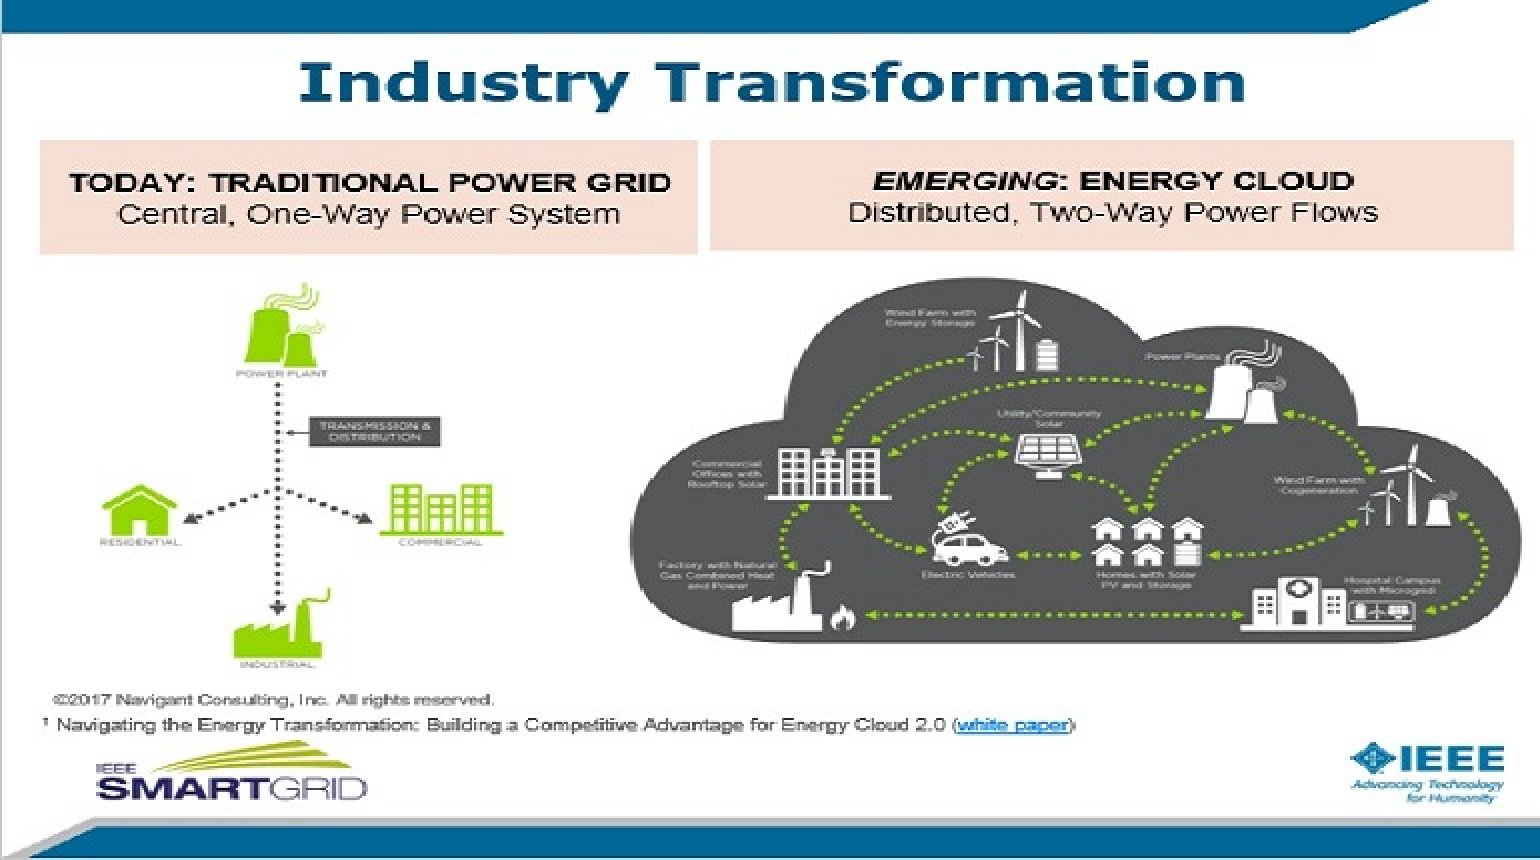 IEEE Standards for Emerging Customer Energy Systems by Robby Simpson & Shawn Chandler